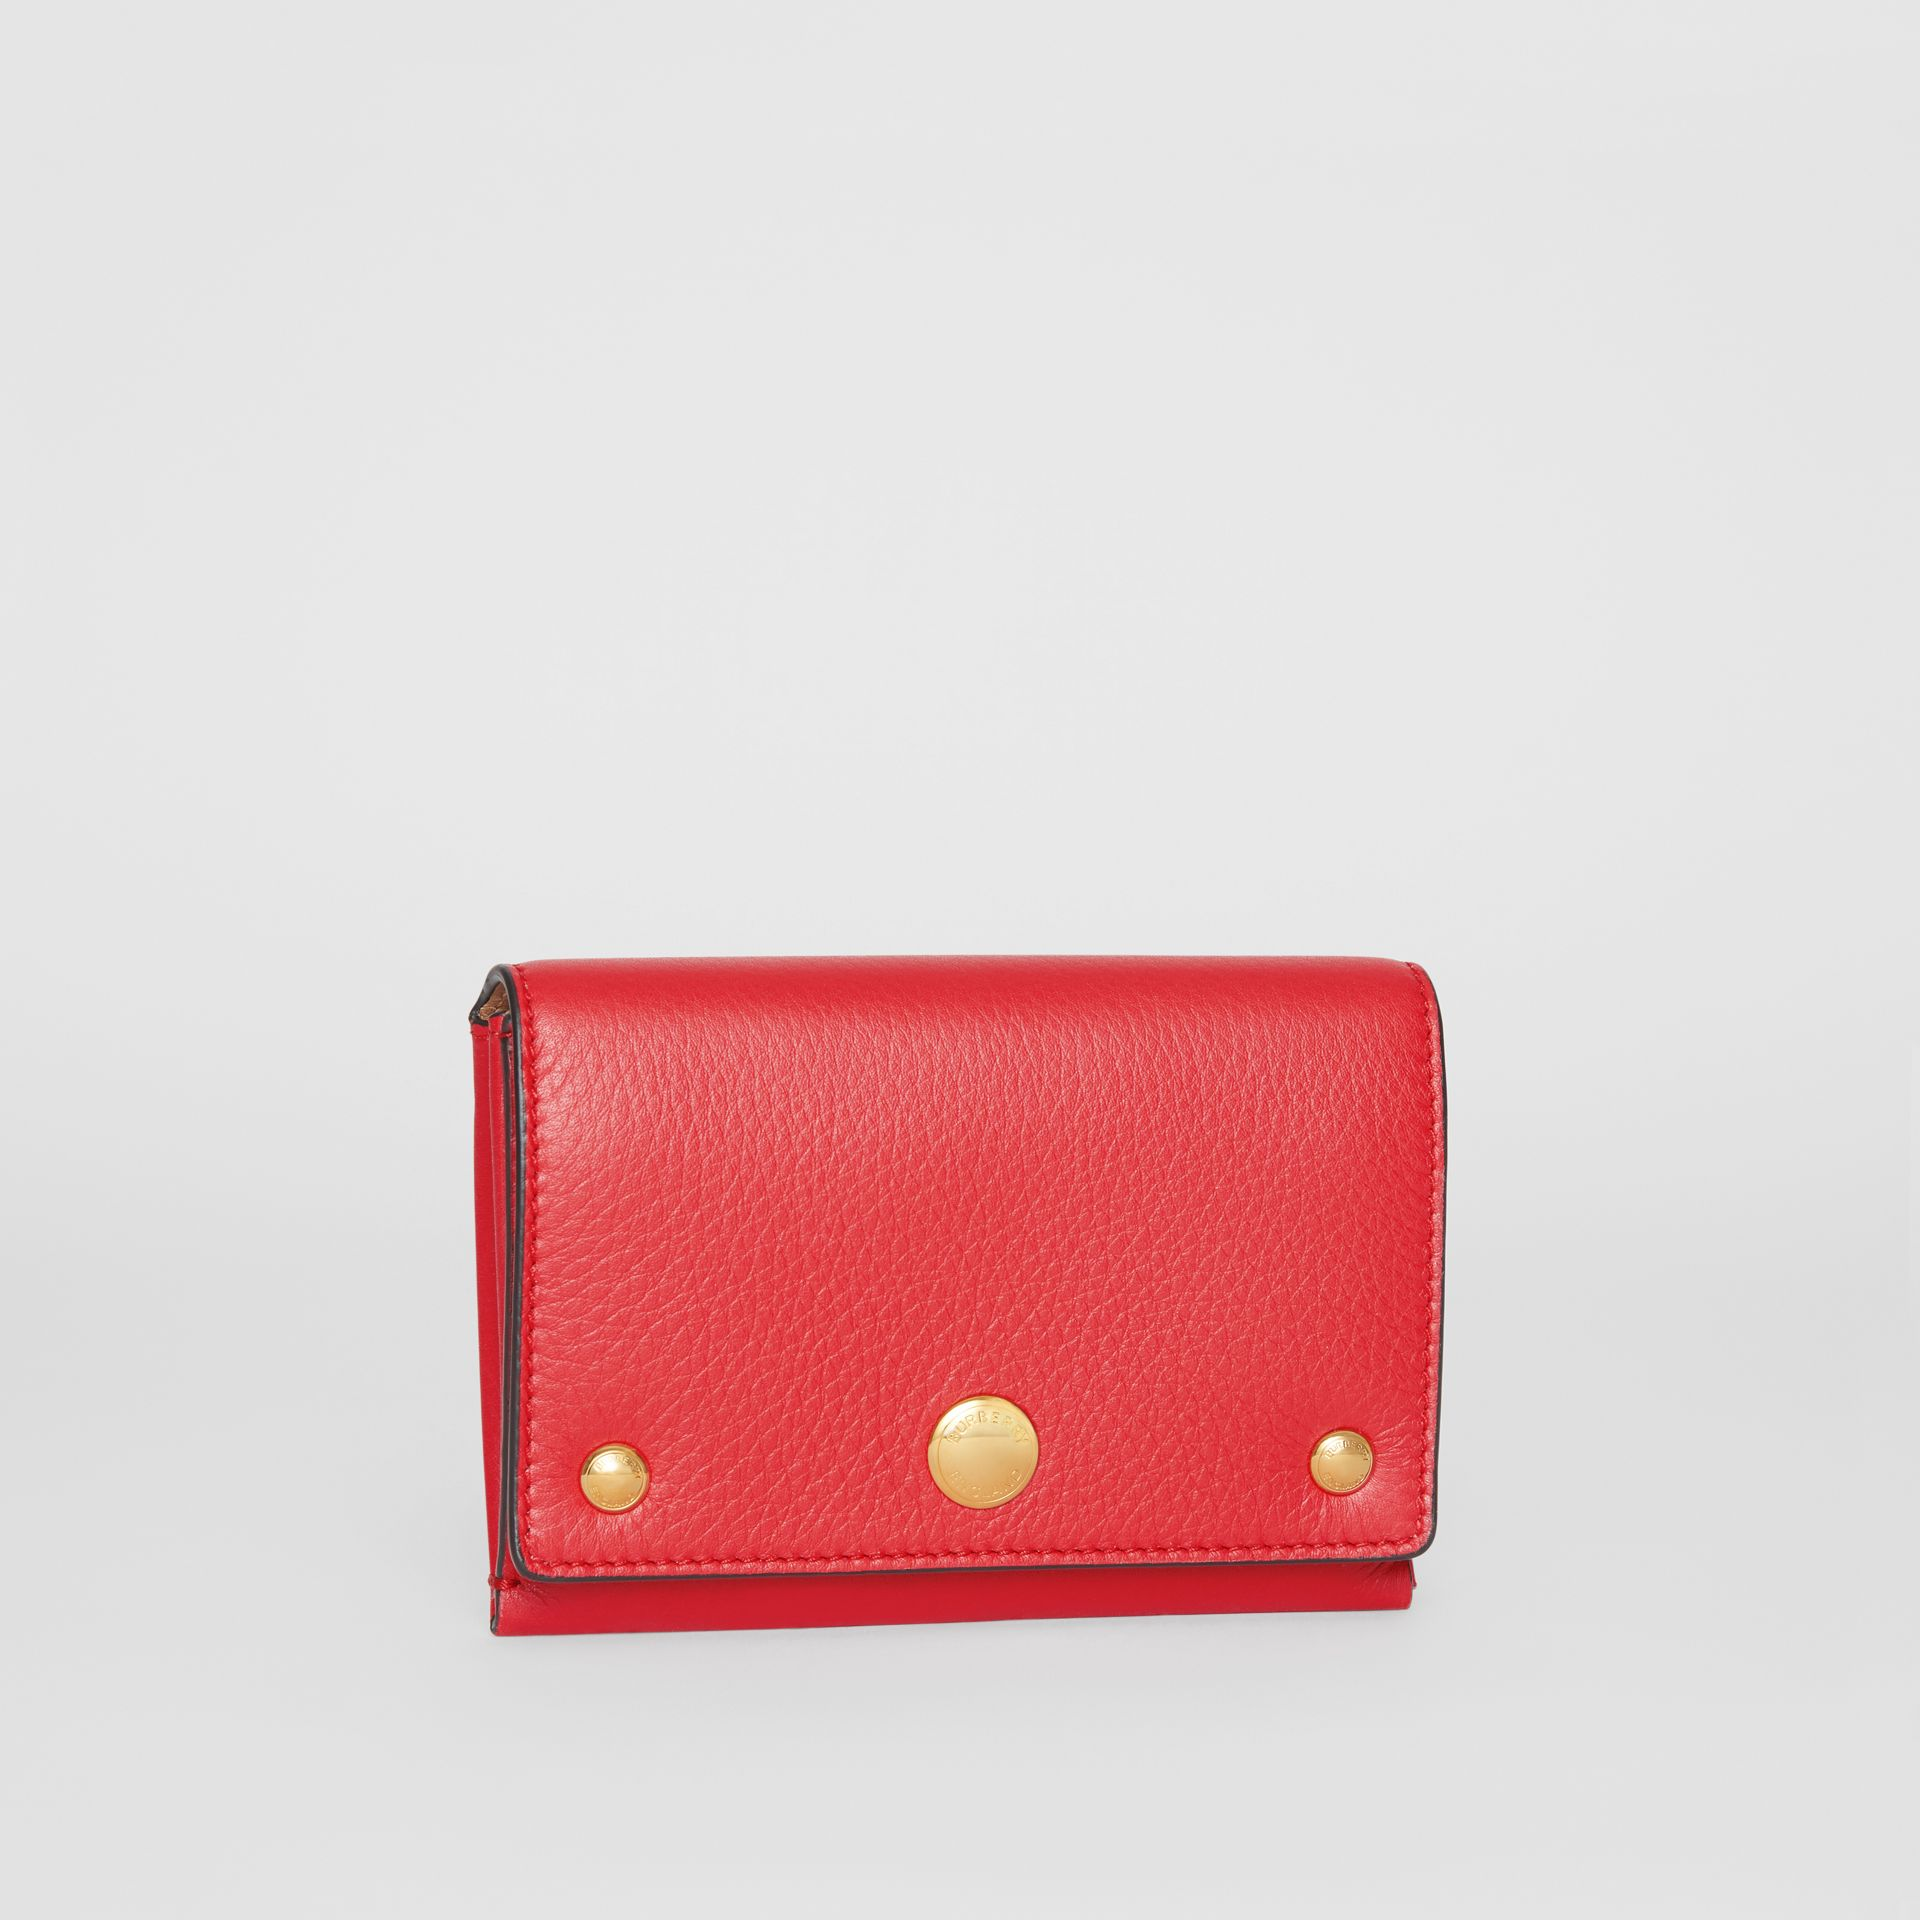 Triple Stud Leather Folding Wallet in Bright Military Red - Women | Burberry Hong Kong - gallery image 3